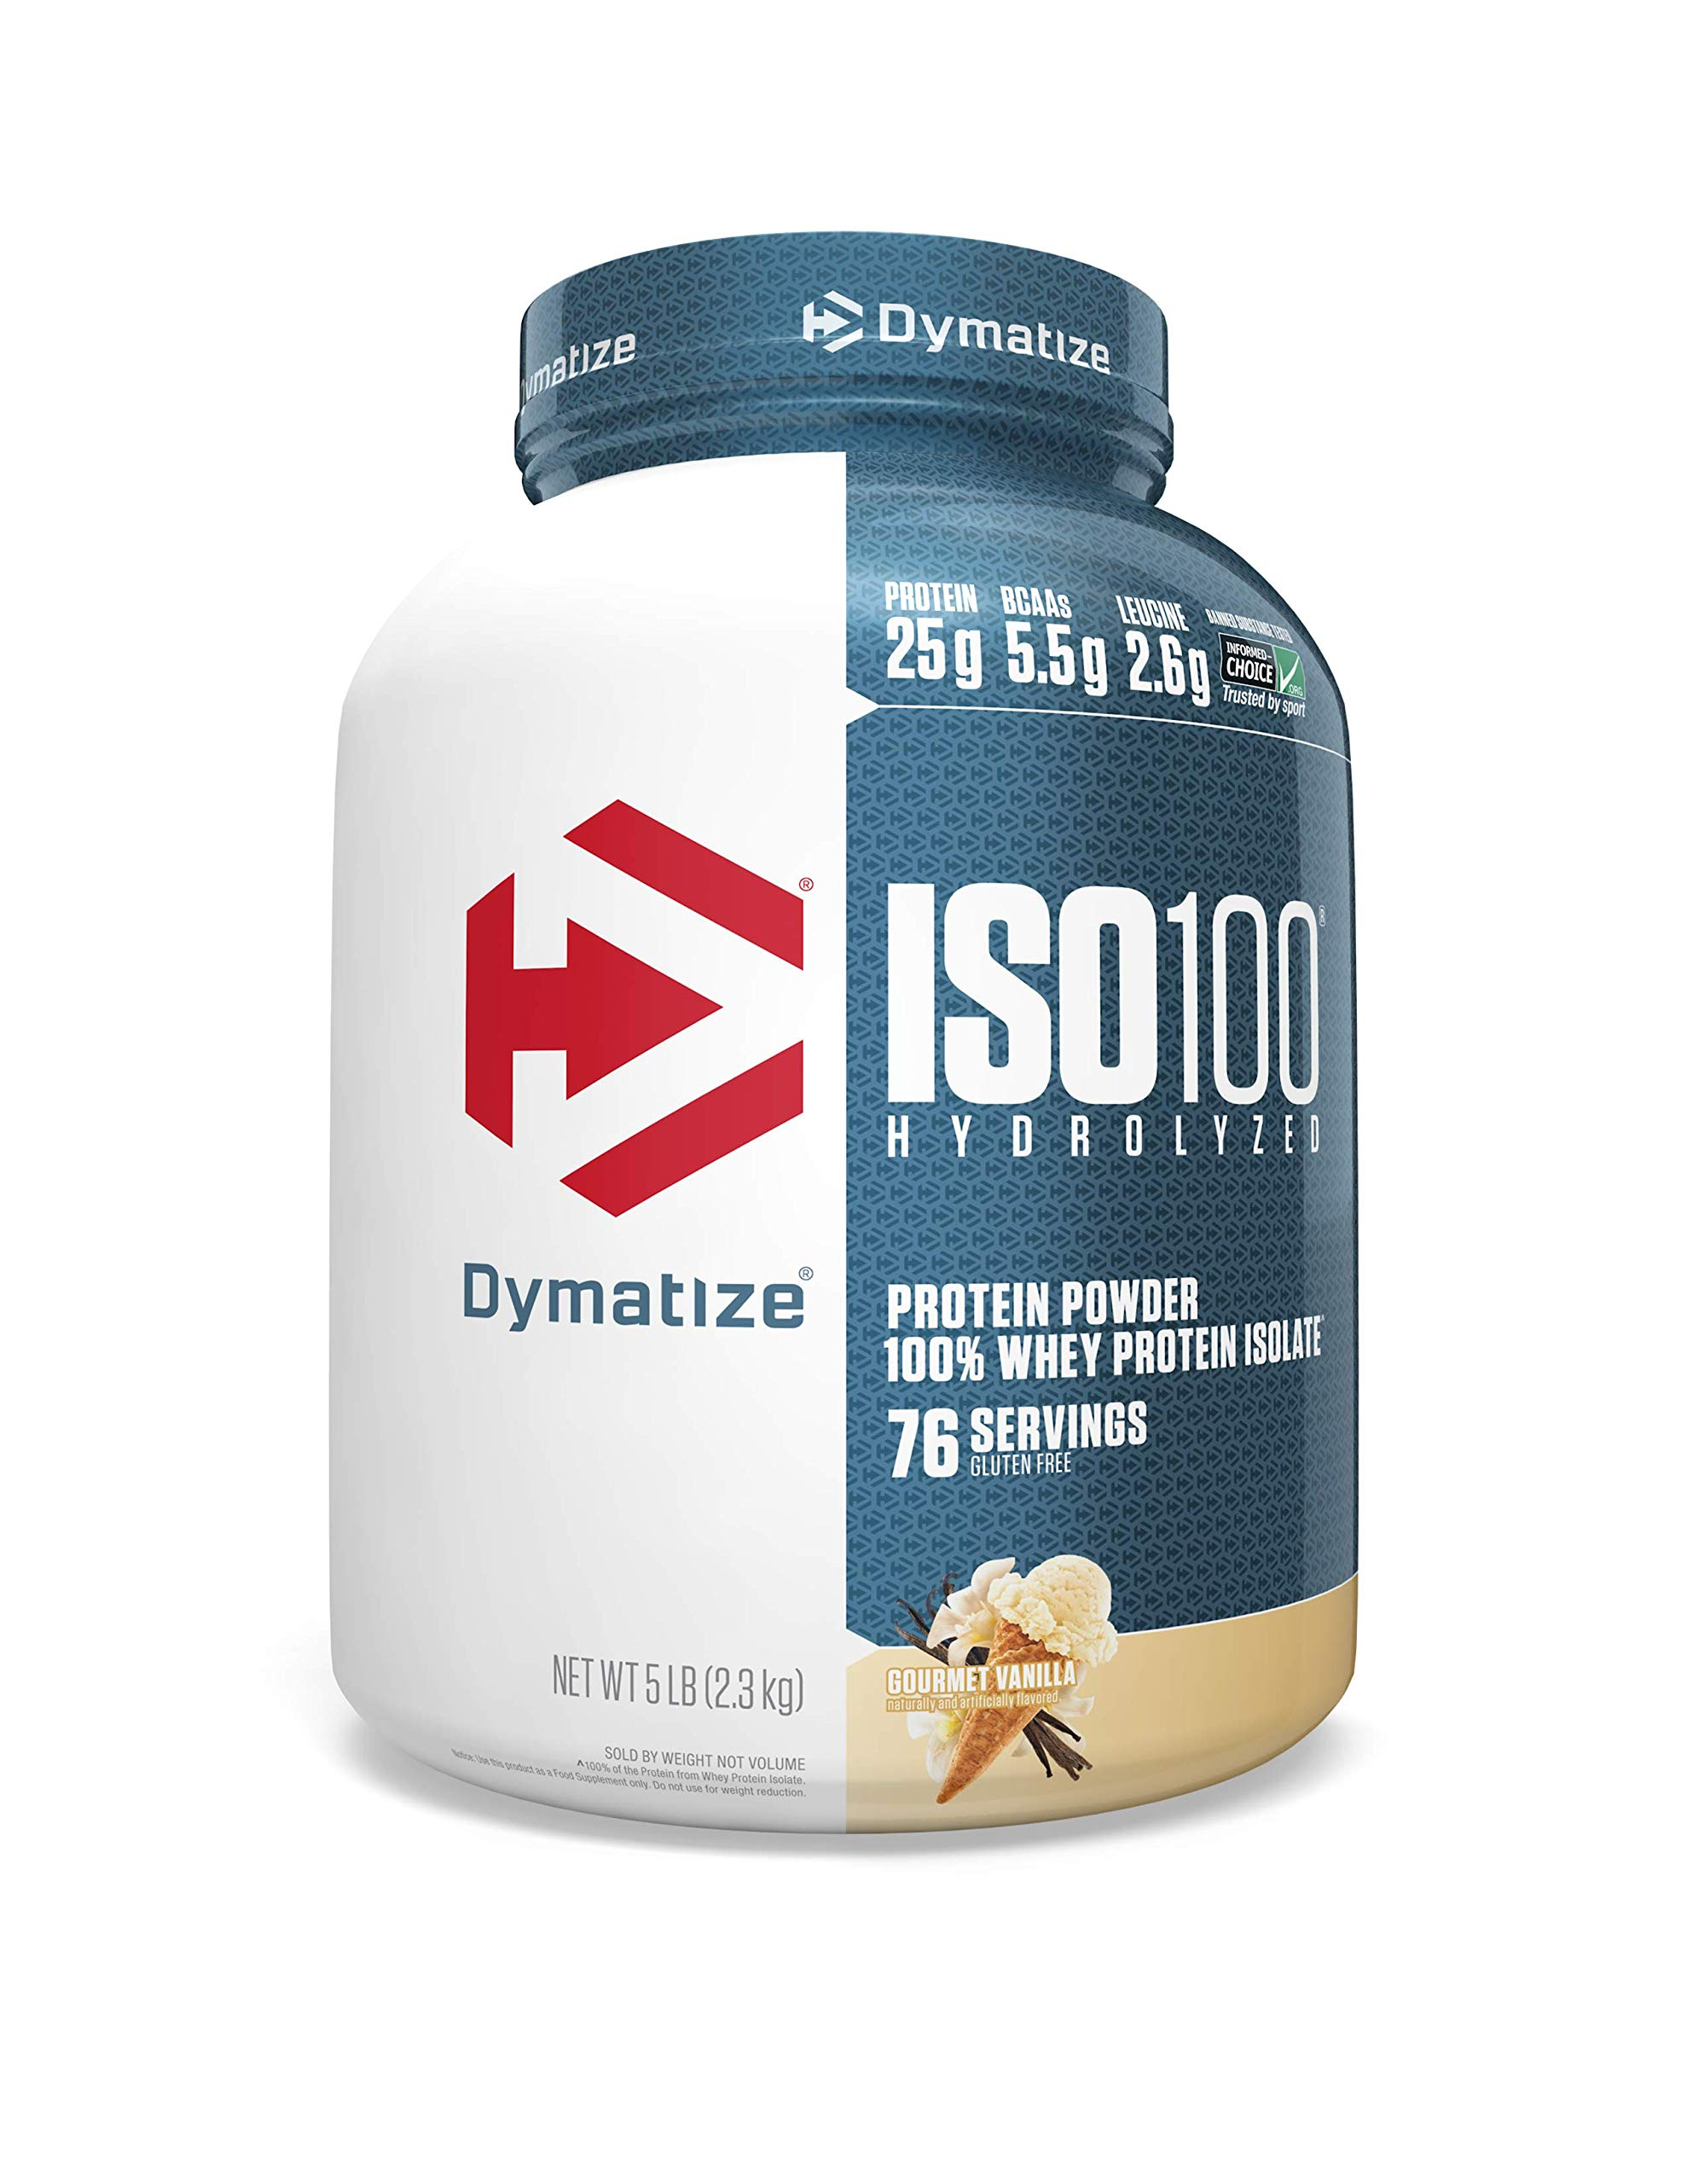 Dymatize ISO 100 Whey Protein Powder with 25g of Hydrolyzed 100% Whey Isolate, Gluten Free, Fast Digesting, Vanilla, 5 Pound